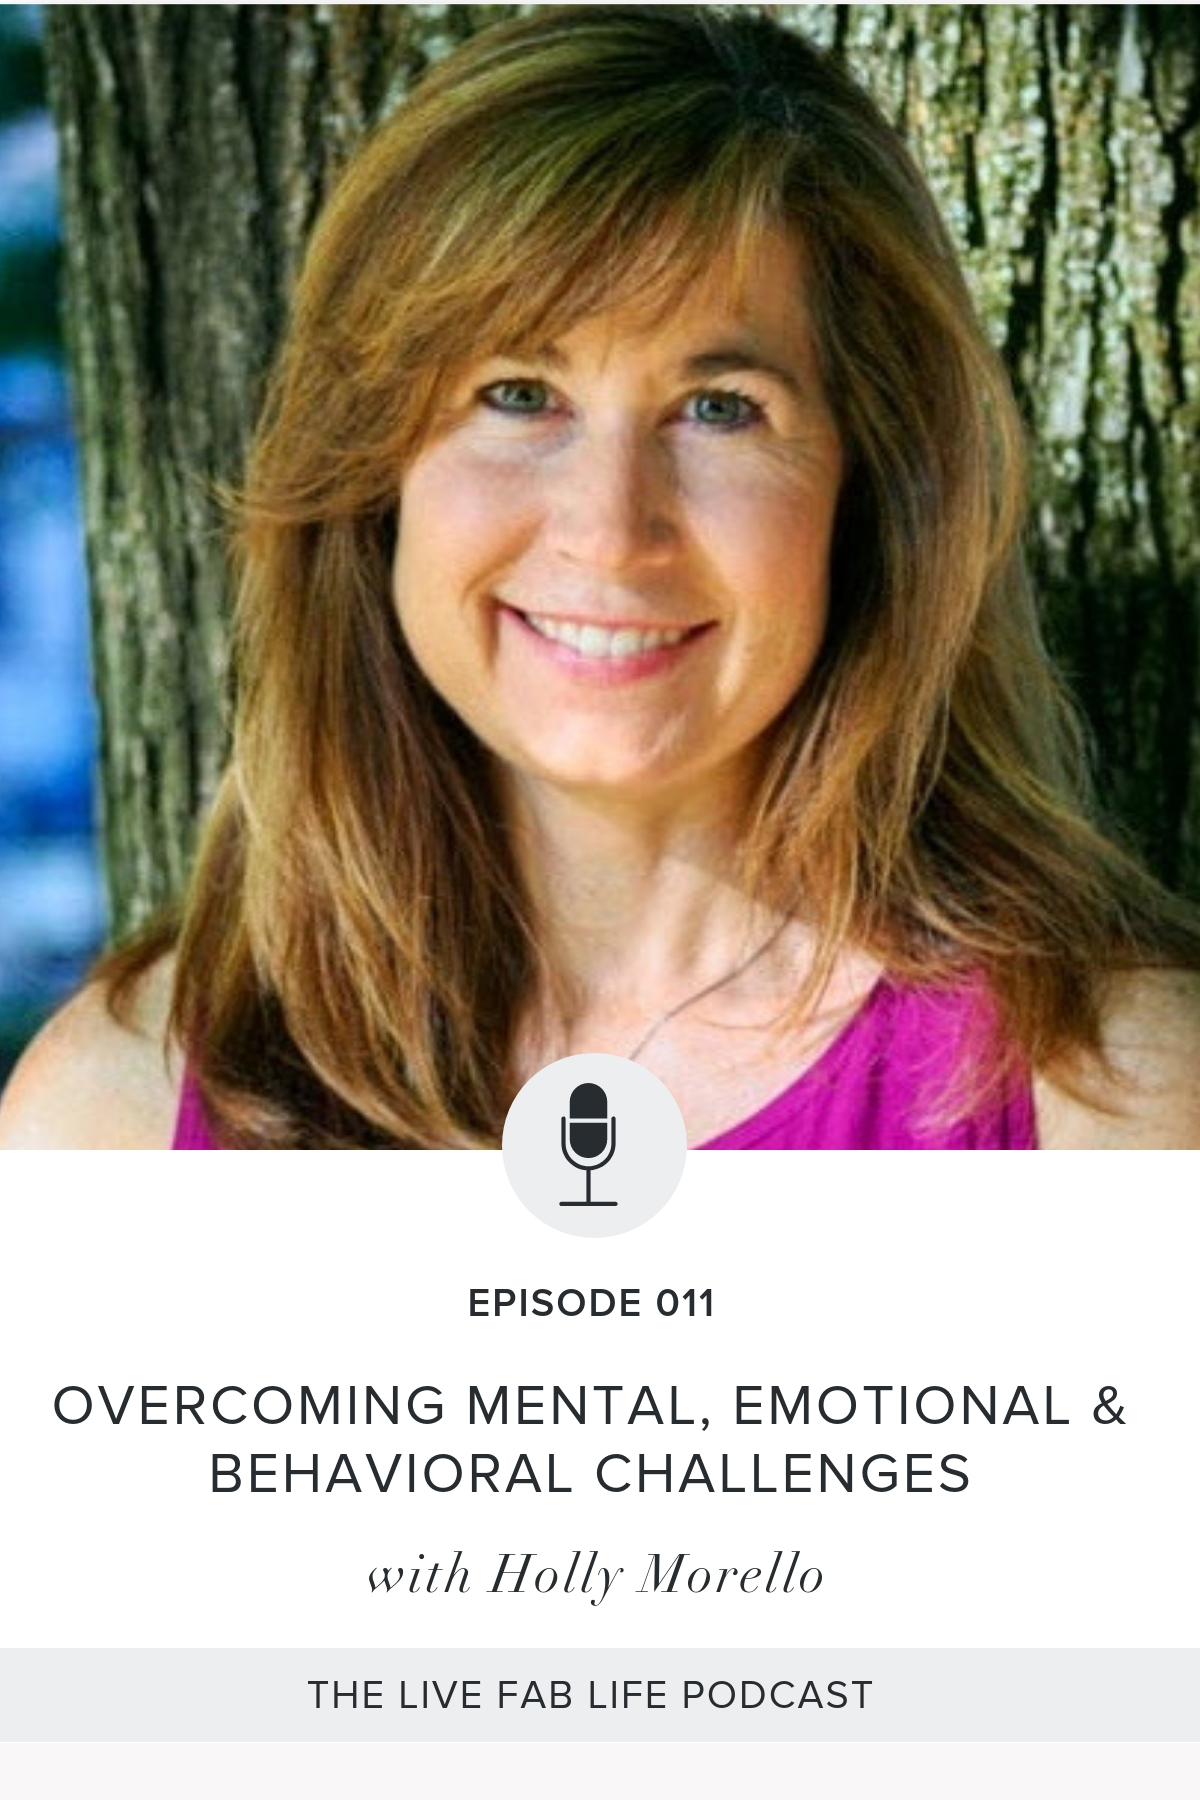 Episode 011: Overcoming Mental, Emotional & Behavioral Challenges with Holly Morello